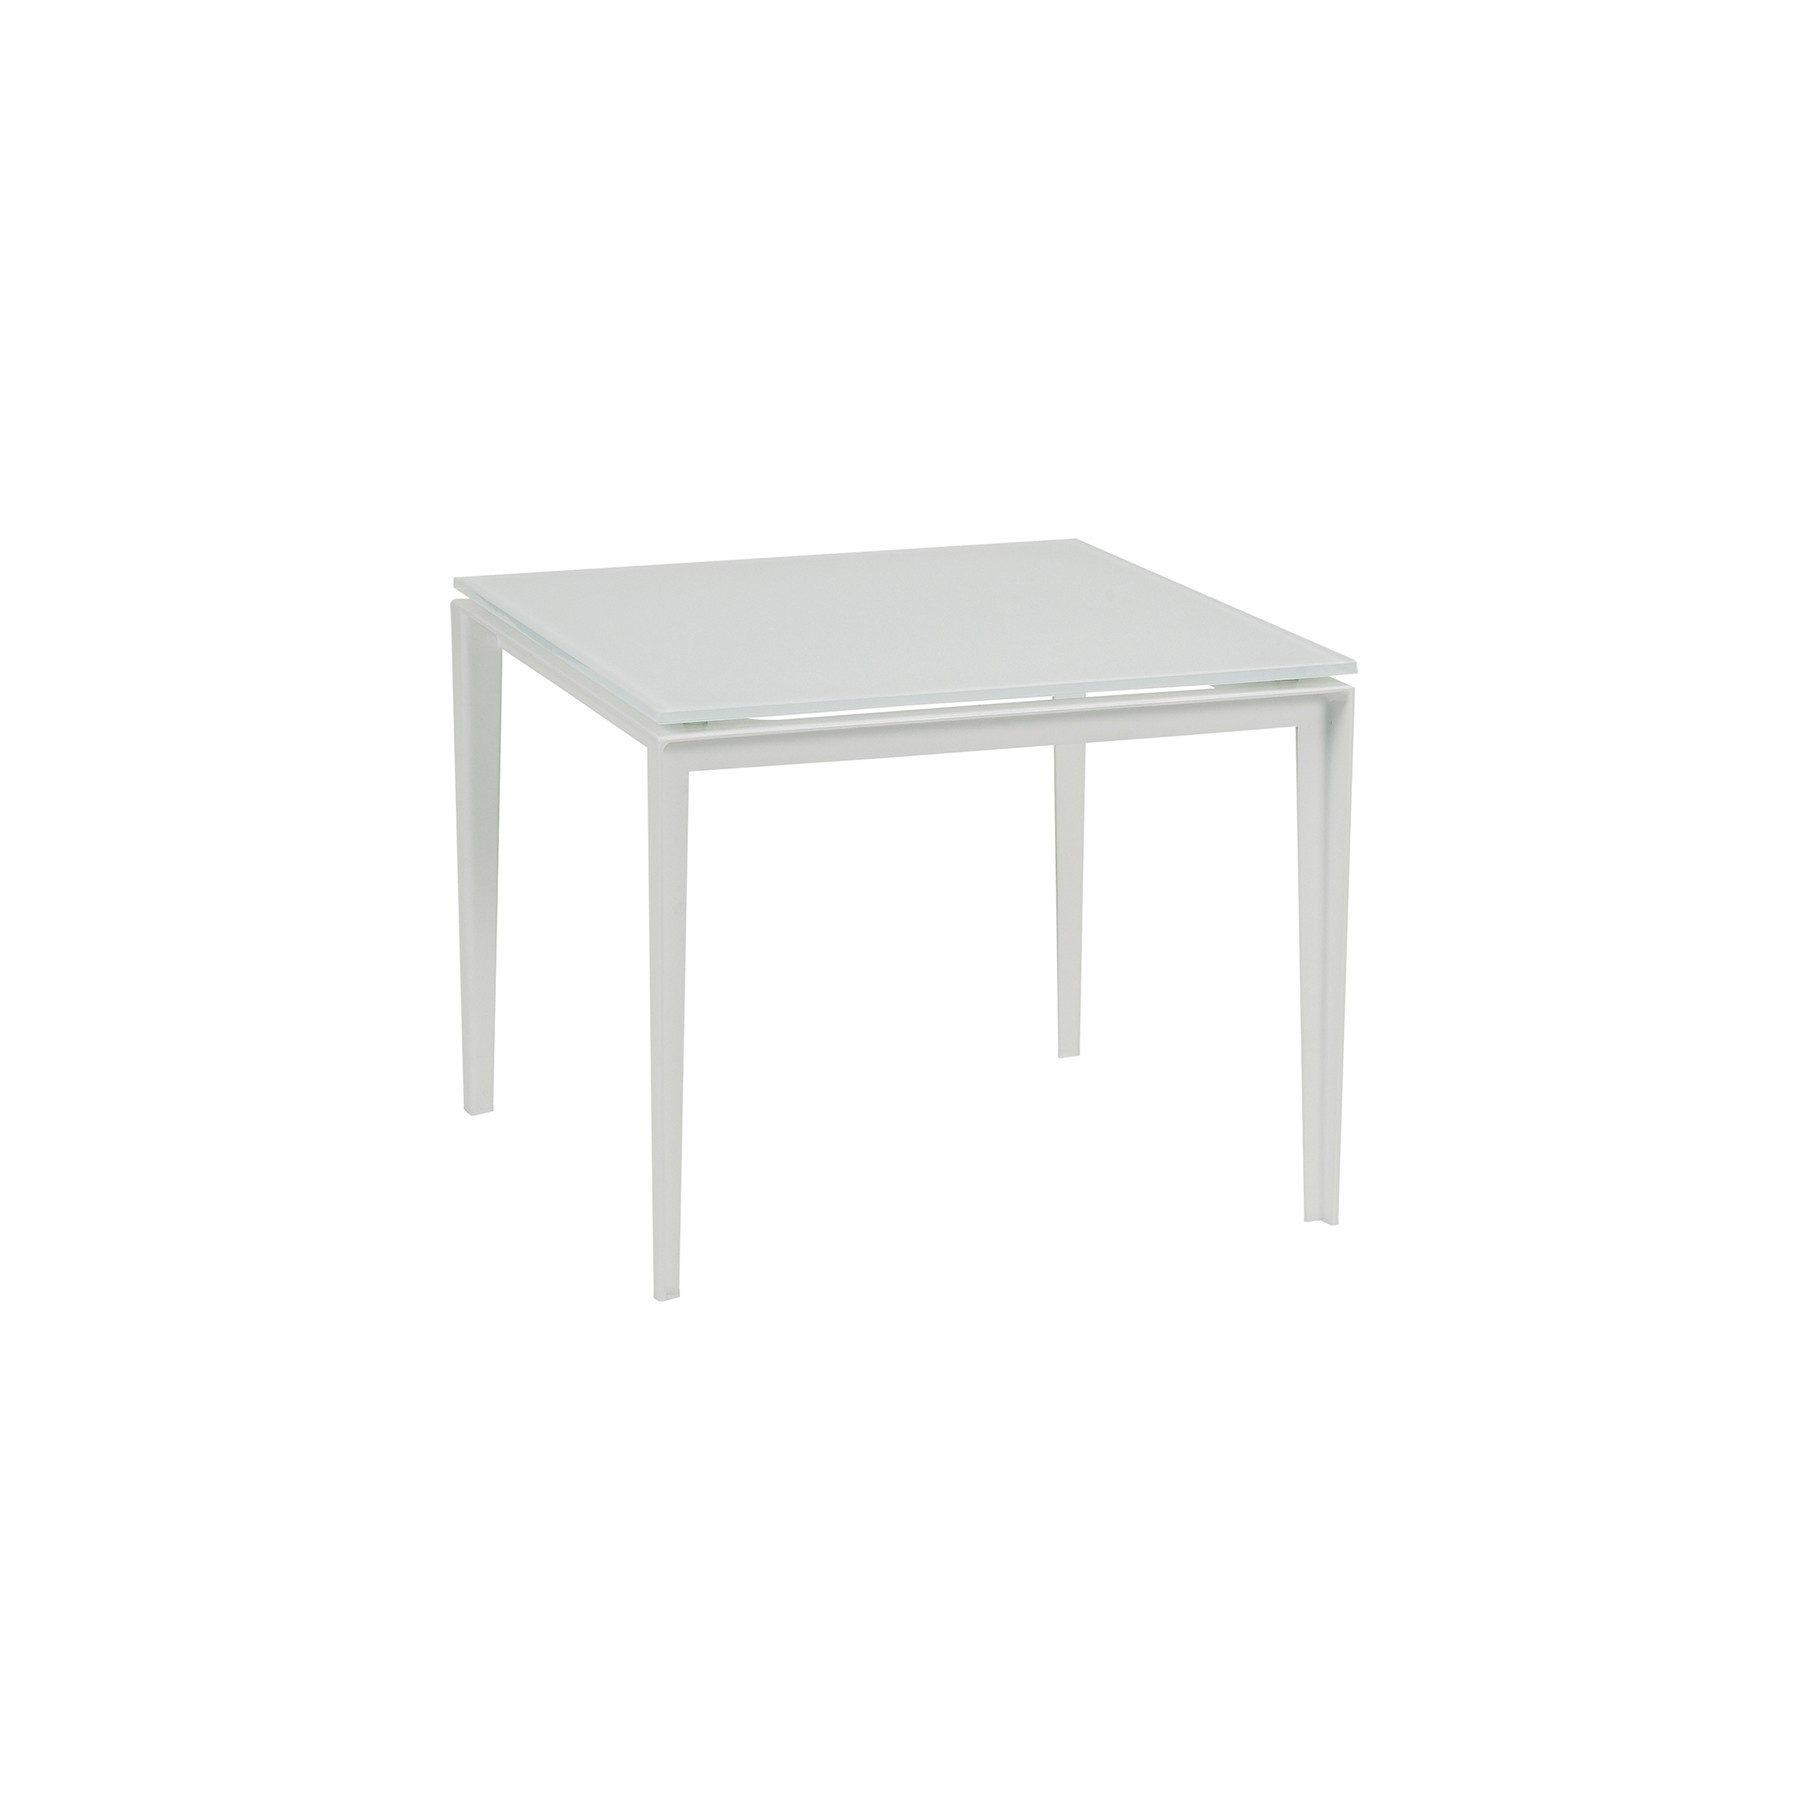 Table basse litlle l de royal botania blanc et plateau verre blanc for Table basse verre et blanc